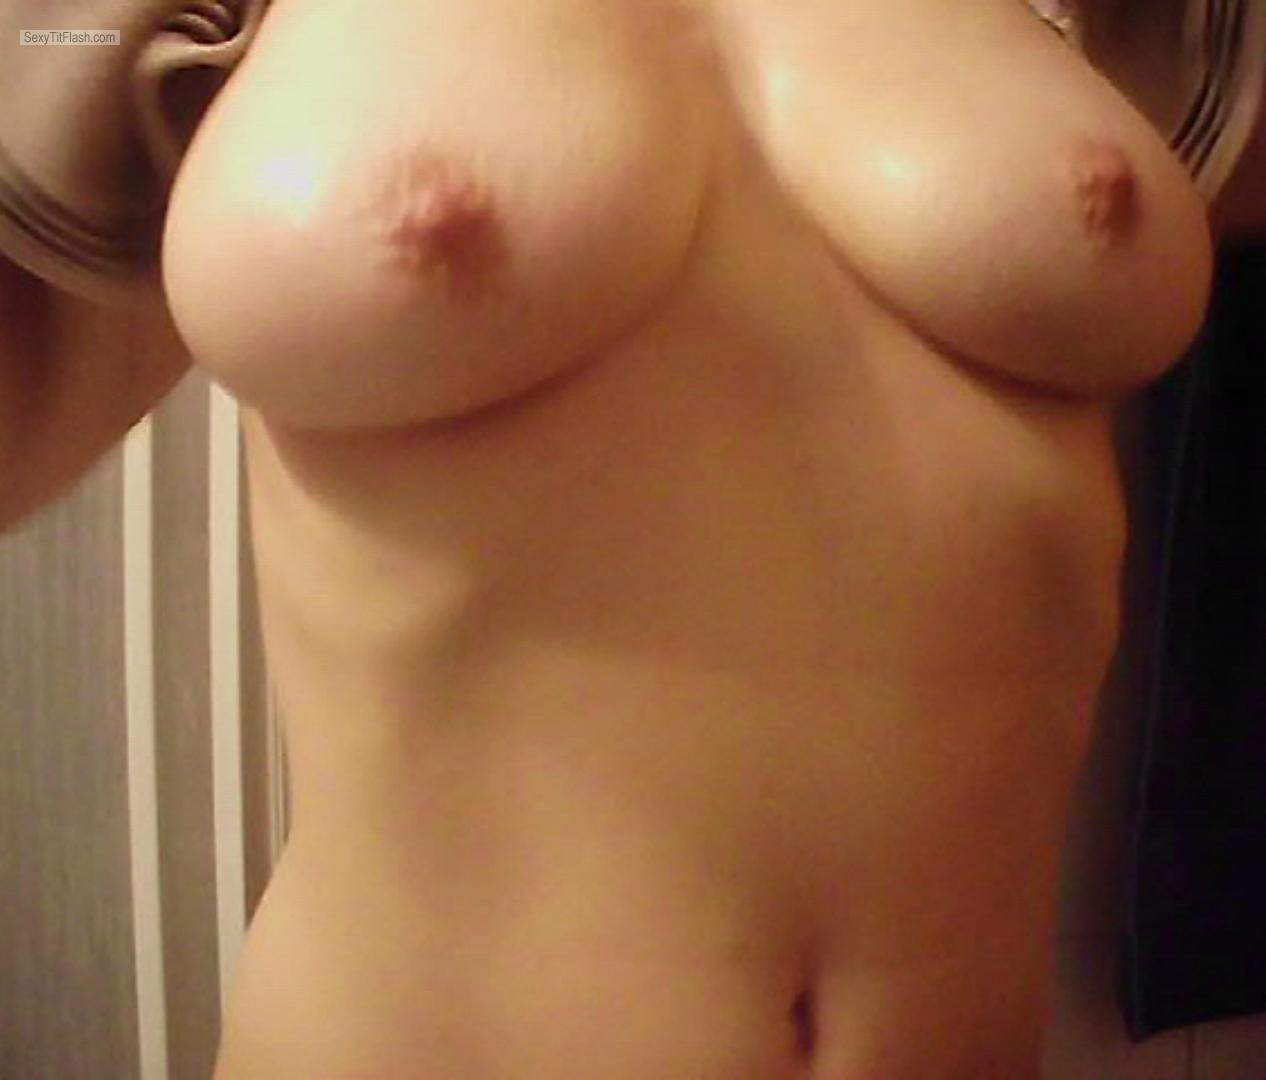 Tit Flash: My Big Tits - Sophie from United States